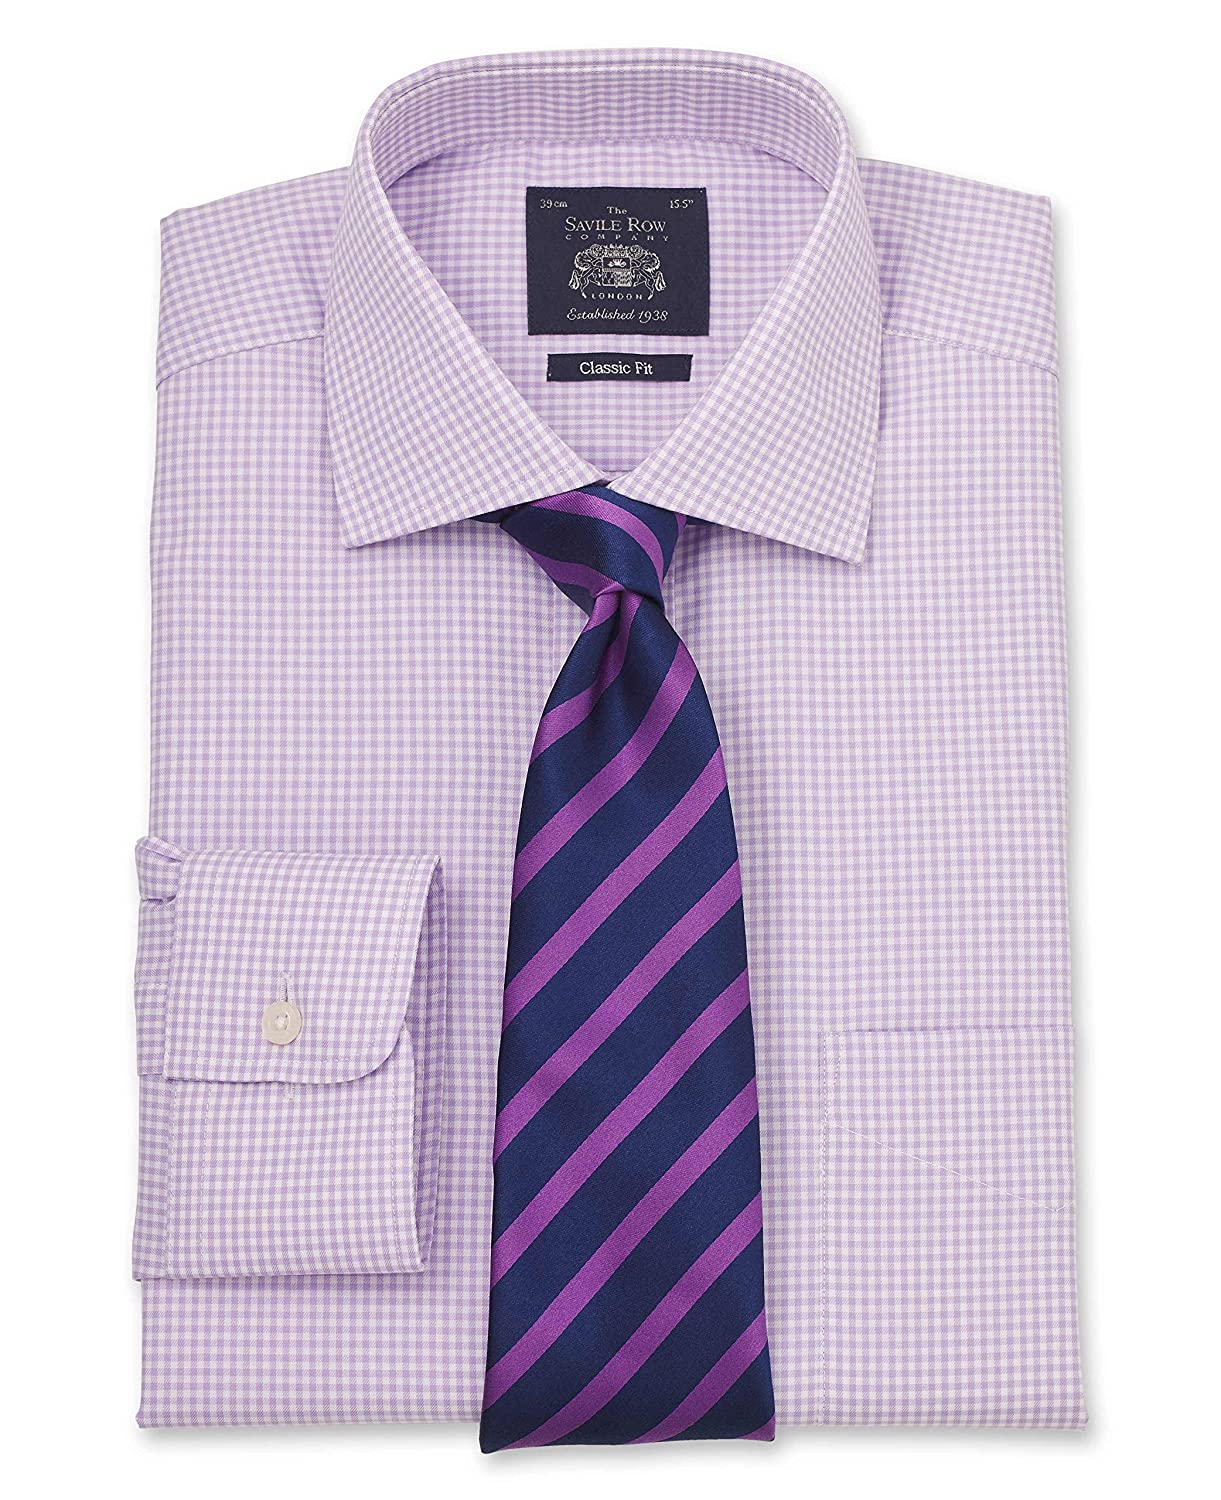 Savile Row Men's Lilac White Gingham Classic Fit Shirt - Single Cuff